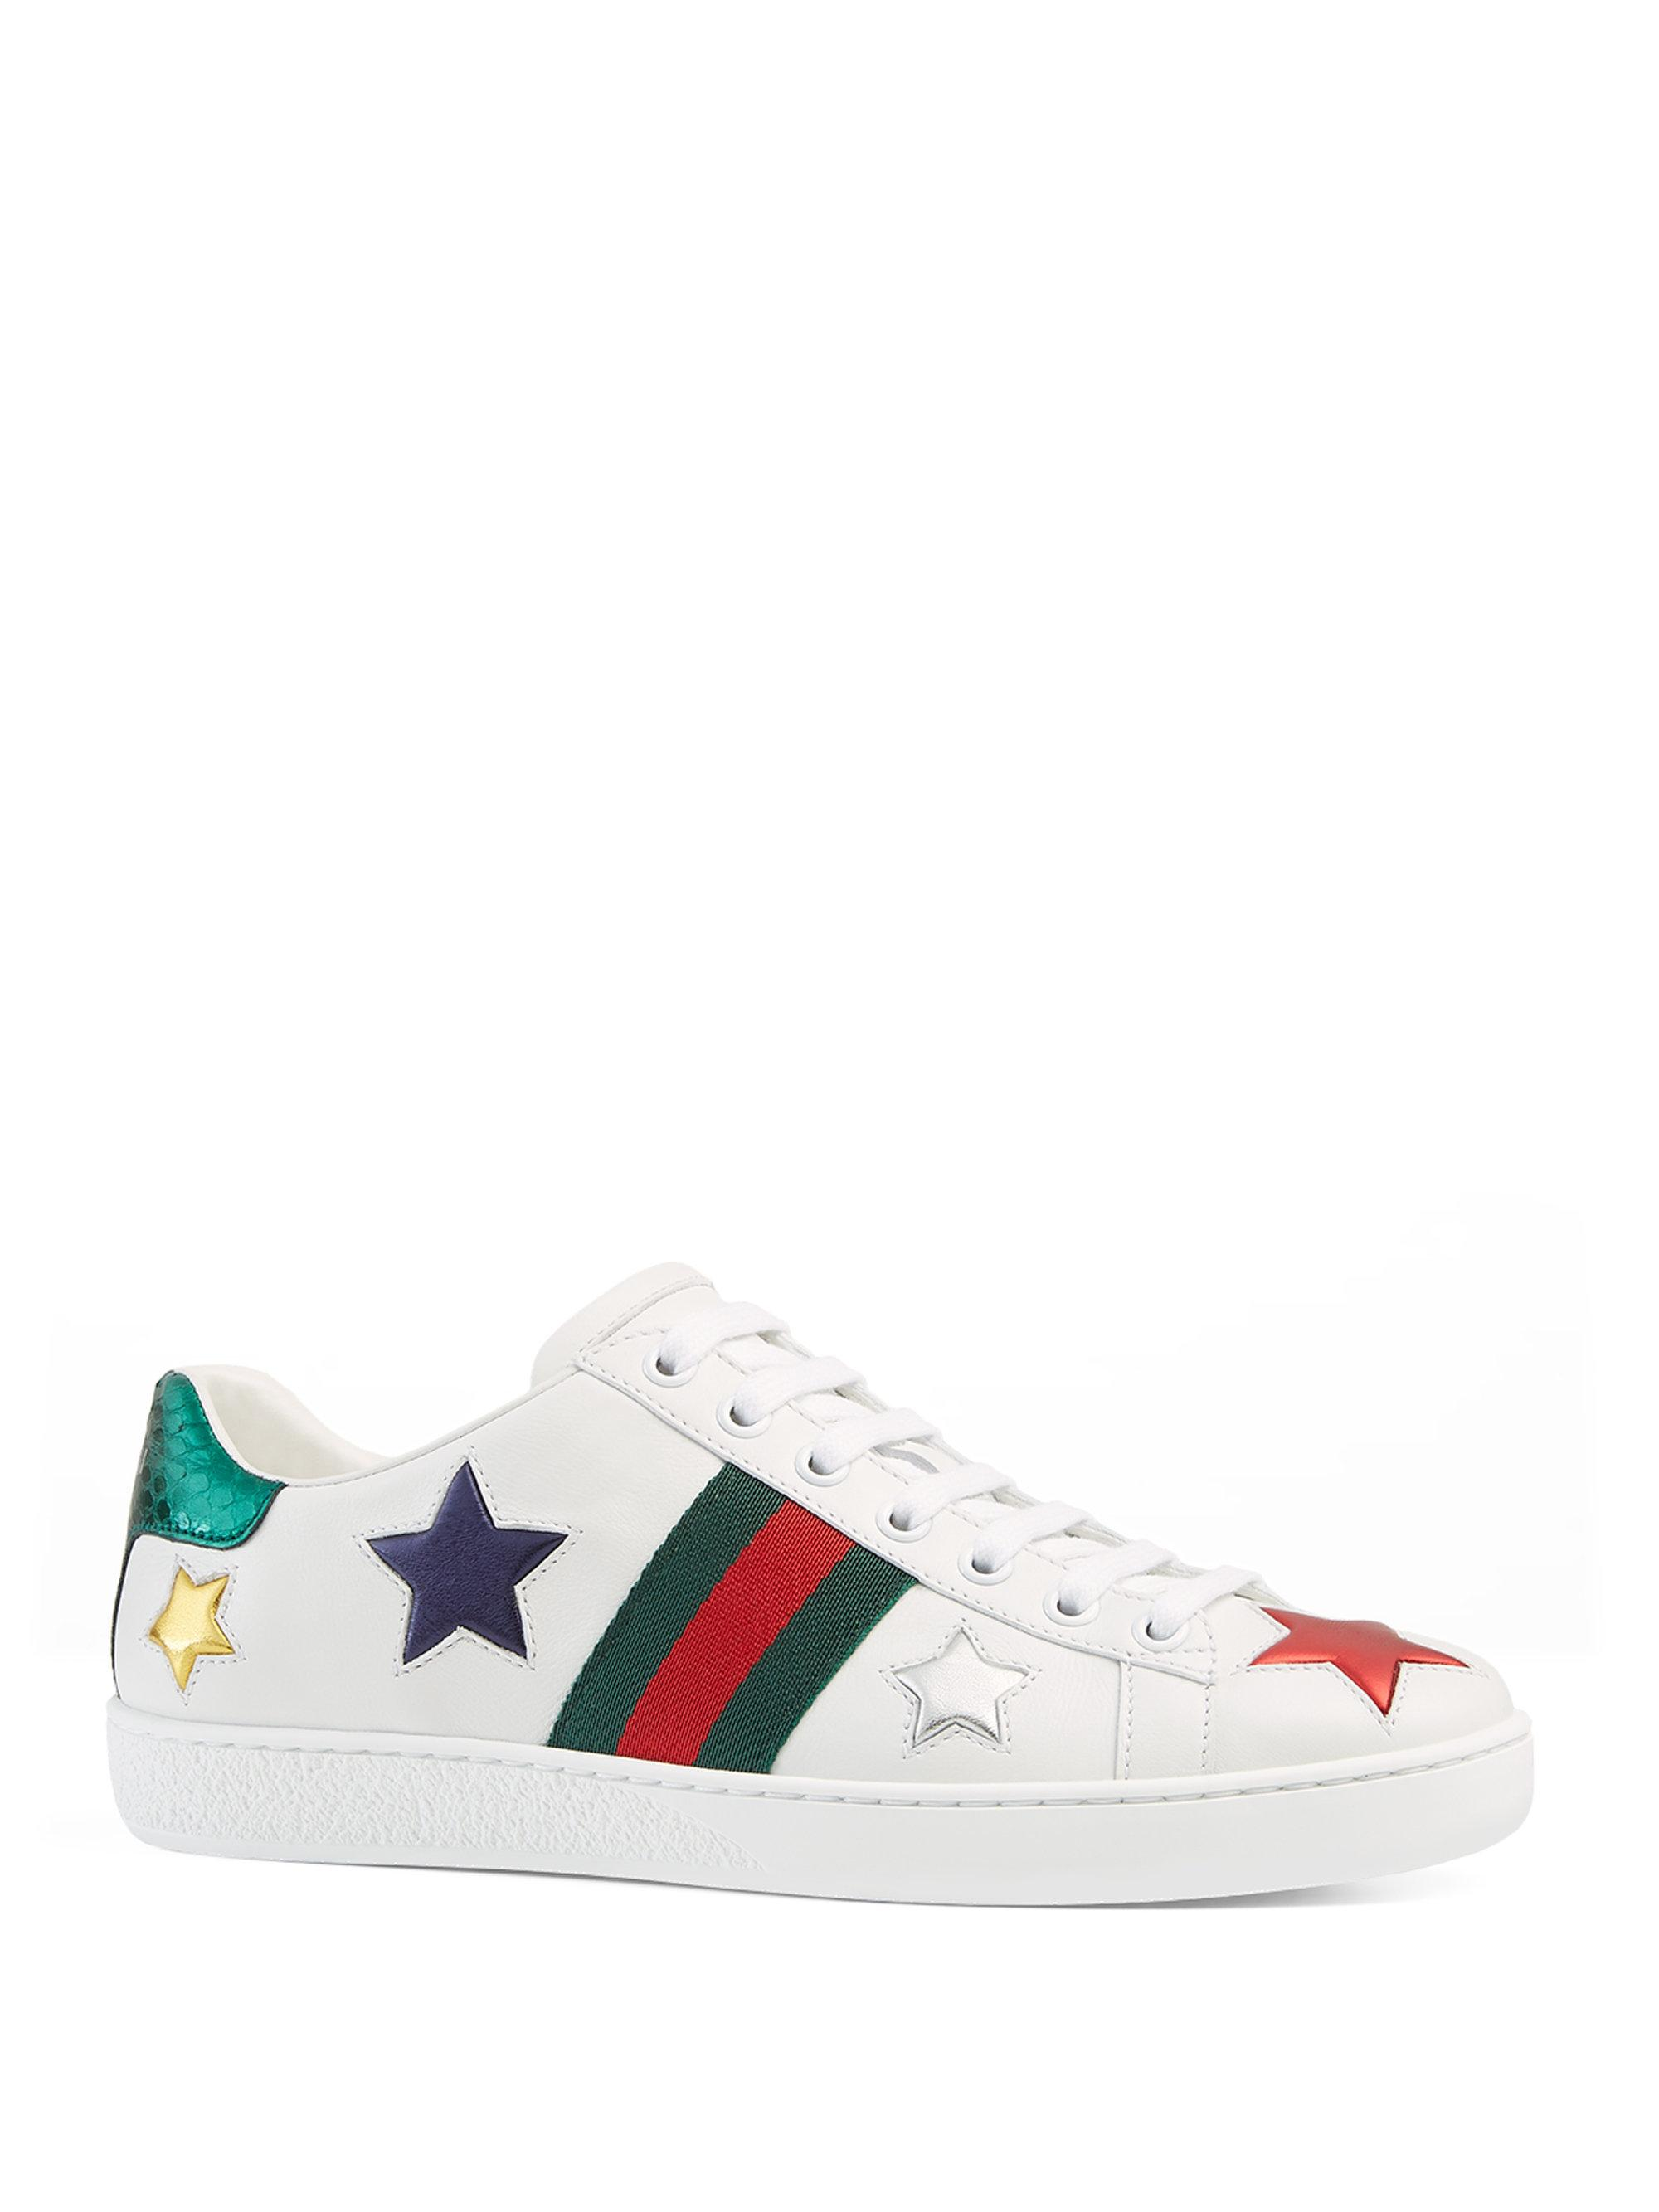 Gucci New Ace Star Leather Low-Top Sneakers p2oyC